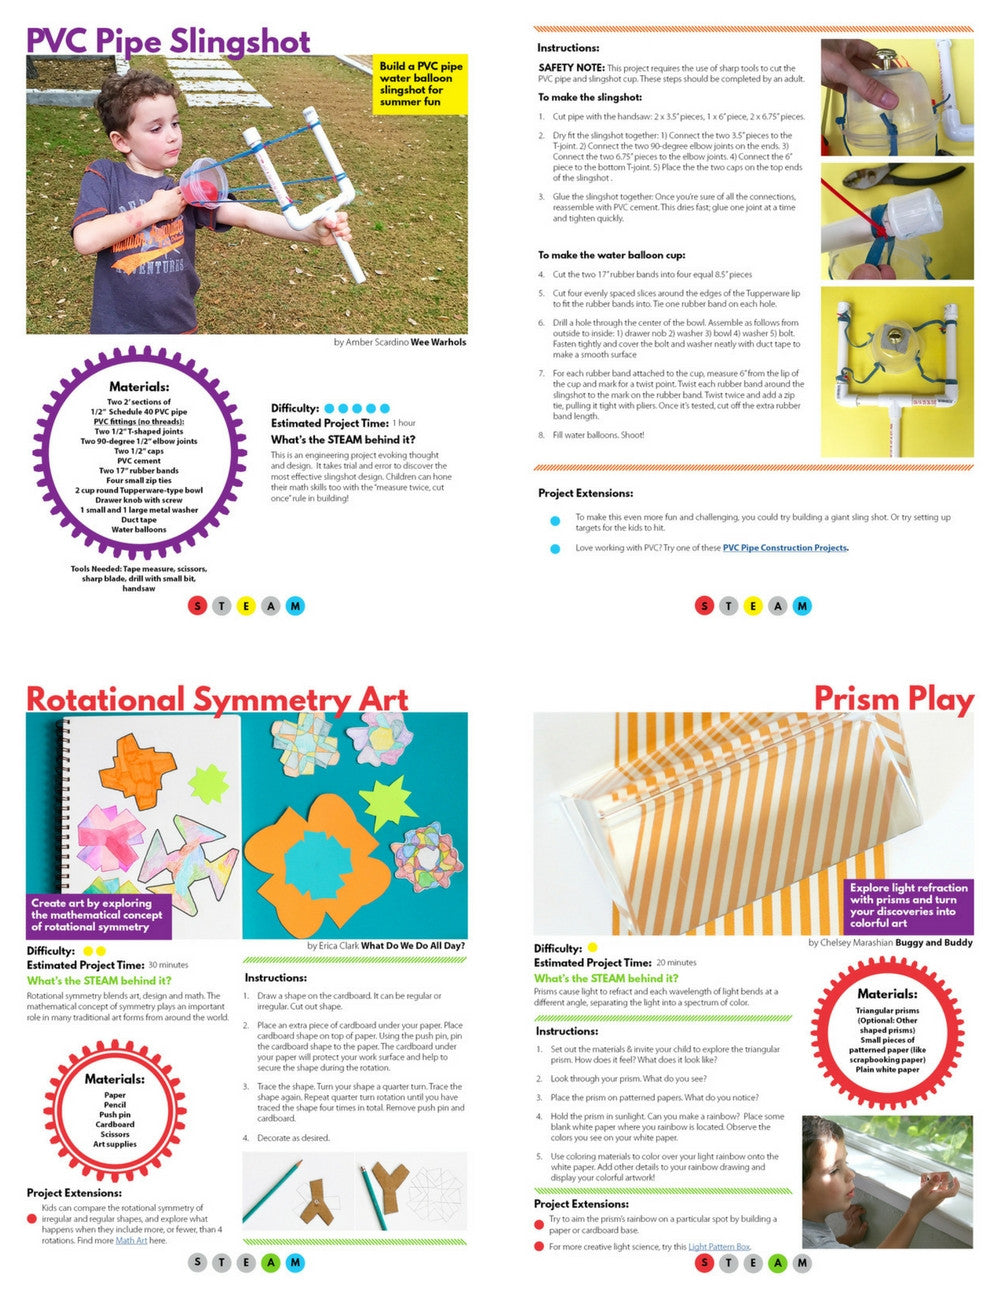 28 Days Of Hands On Stem Activities For Kids Left Brain Craft Pinterest Science Projects Fair And Stems Right Carousel Arrow